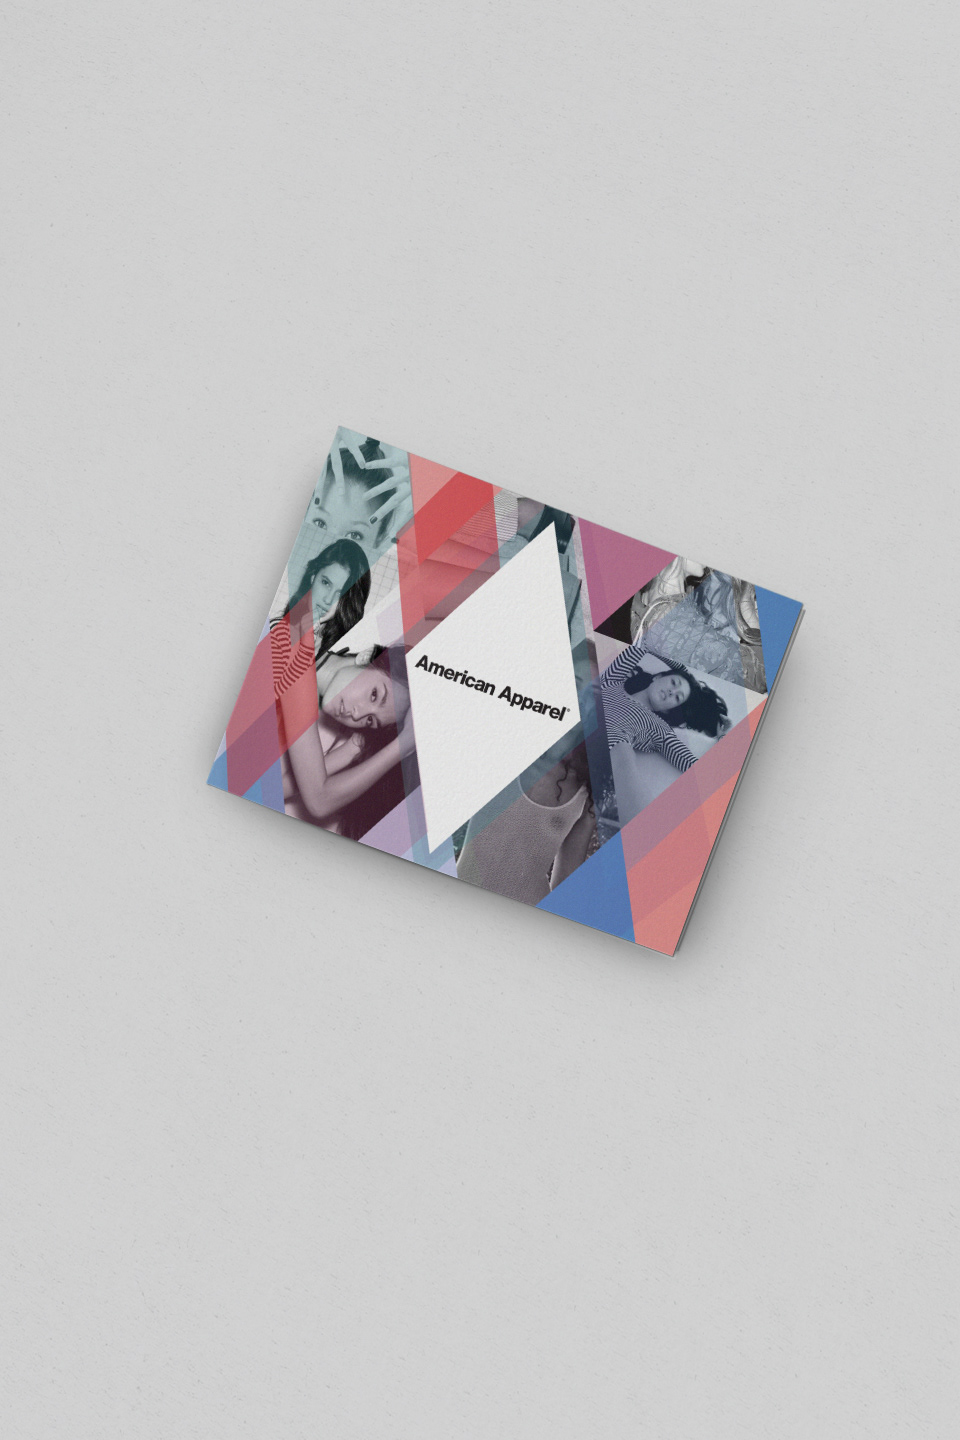 American Apparel Brand Book